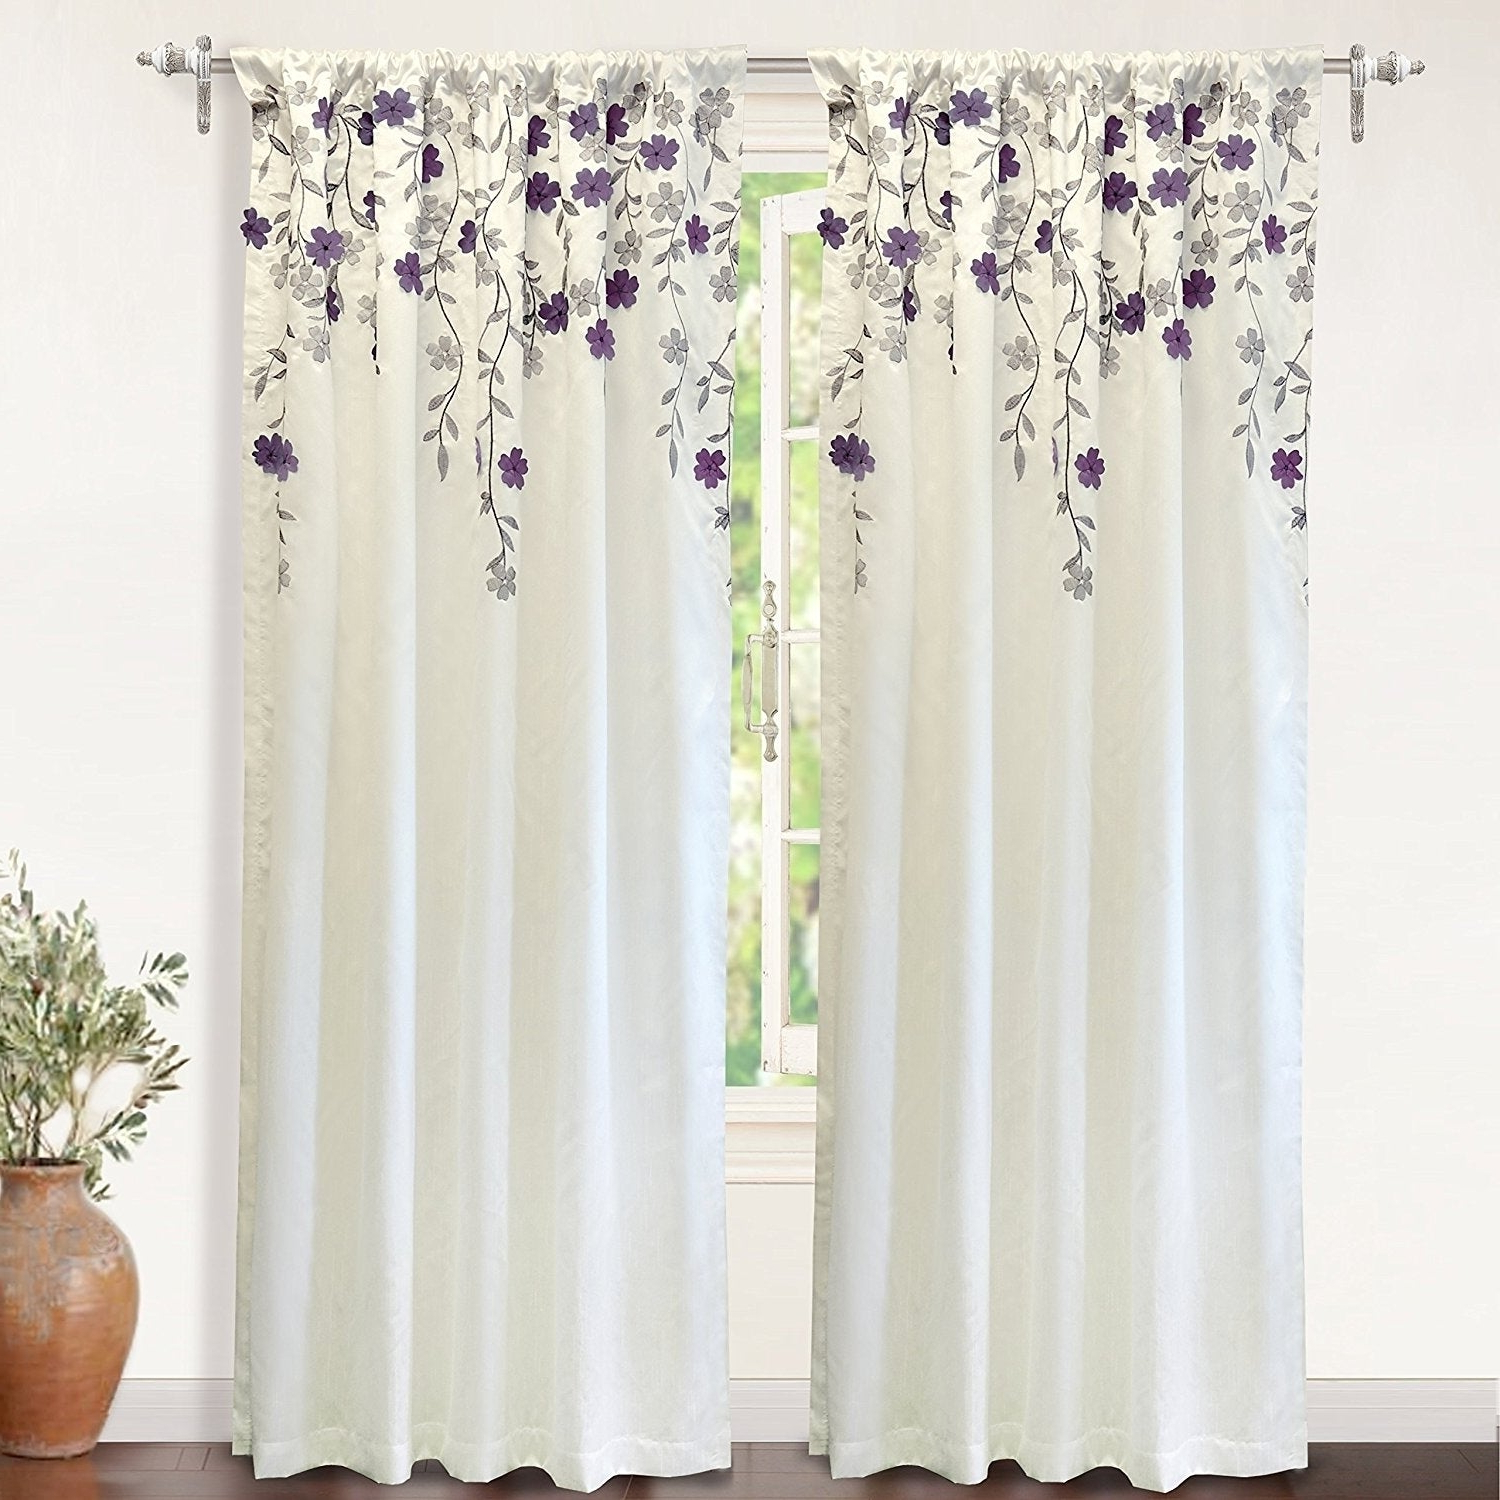 Ofloral Embroidered Faux Silk Window Curtain Panels Inside Newest Driftaway Isabella Faux Silk Lined Thermal Embroidered Crafted Flower Window Curtain Panel (View 15 of 20)